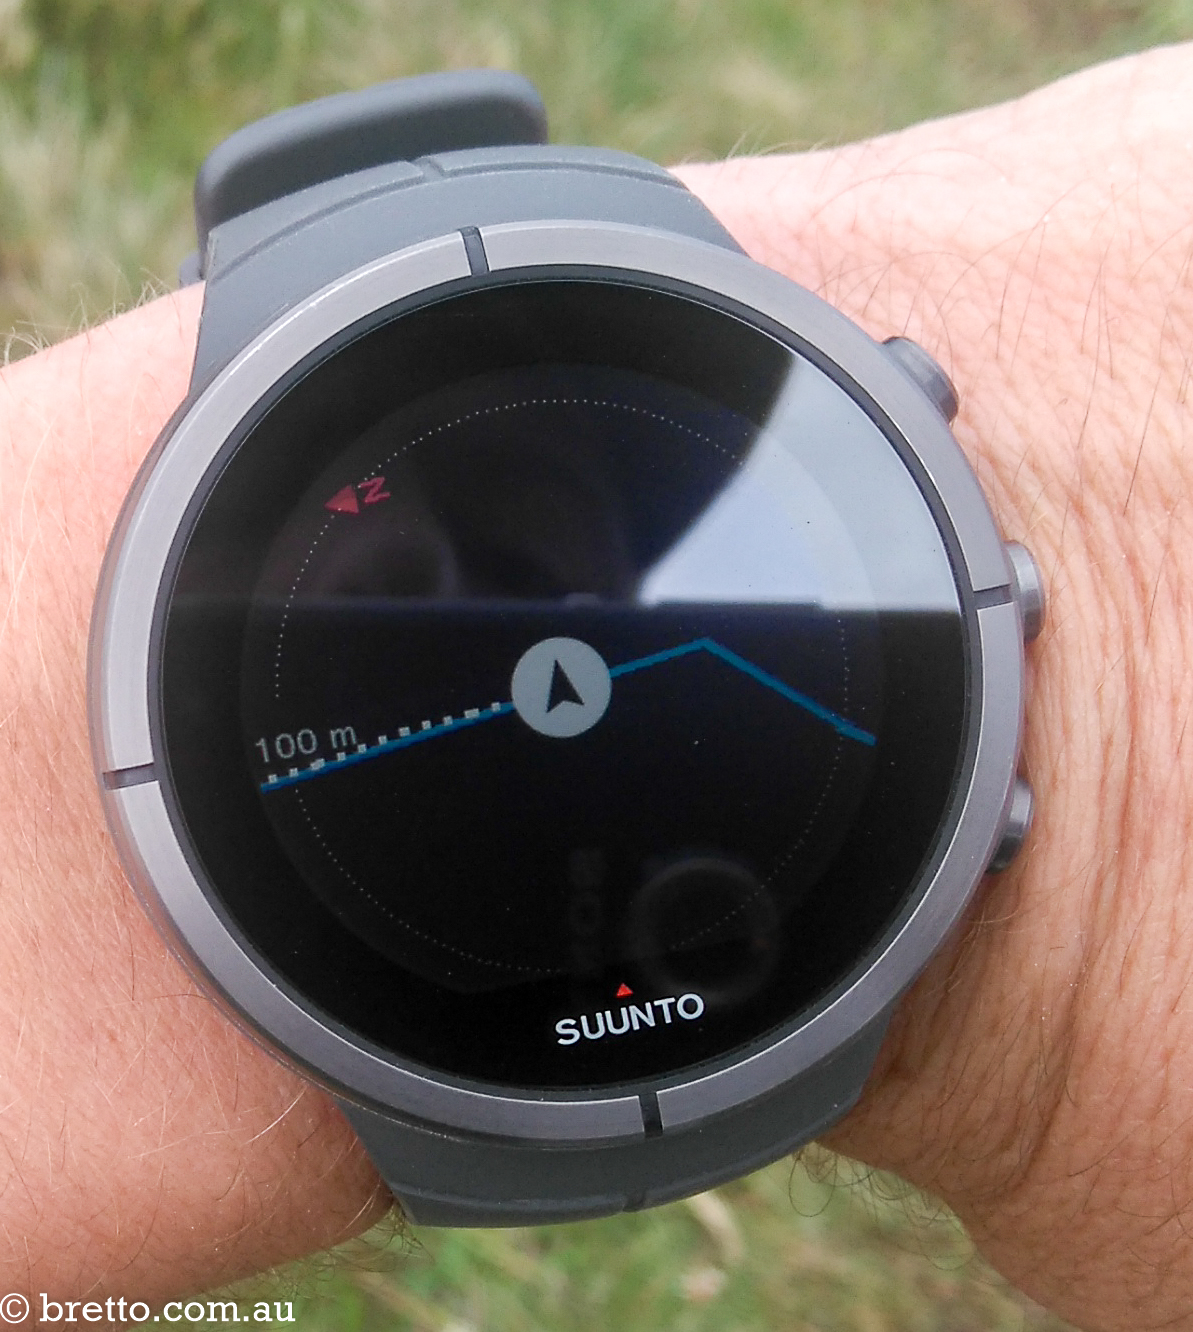 Gear Review Suunto Spartan Ultra Gps Watch The World Of Bretto Ambit3 Peak Sapphire Black Hr For Outdoor Sports Fortunately These Problems Have Been Mostly Resolved And Is Now Really Good It Would Want To Be As Not Cheap About Aud1000 Depending